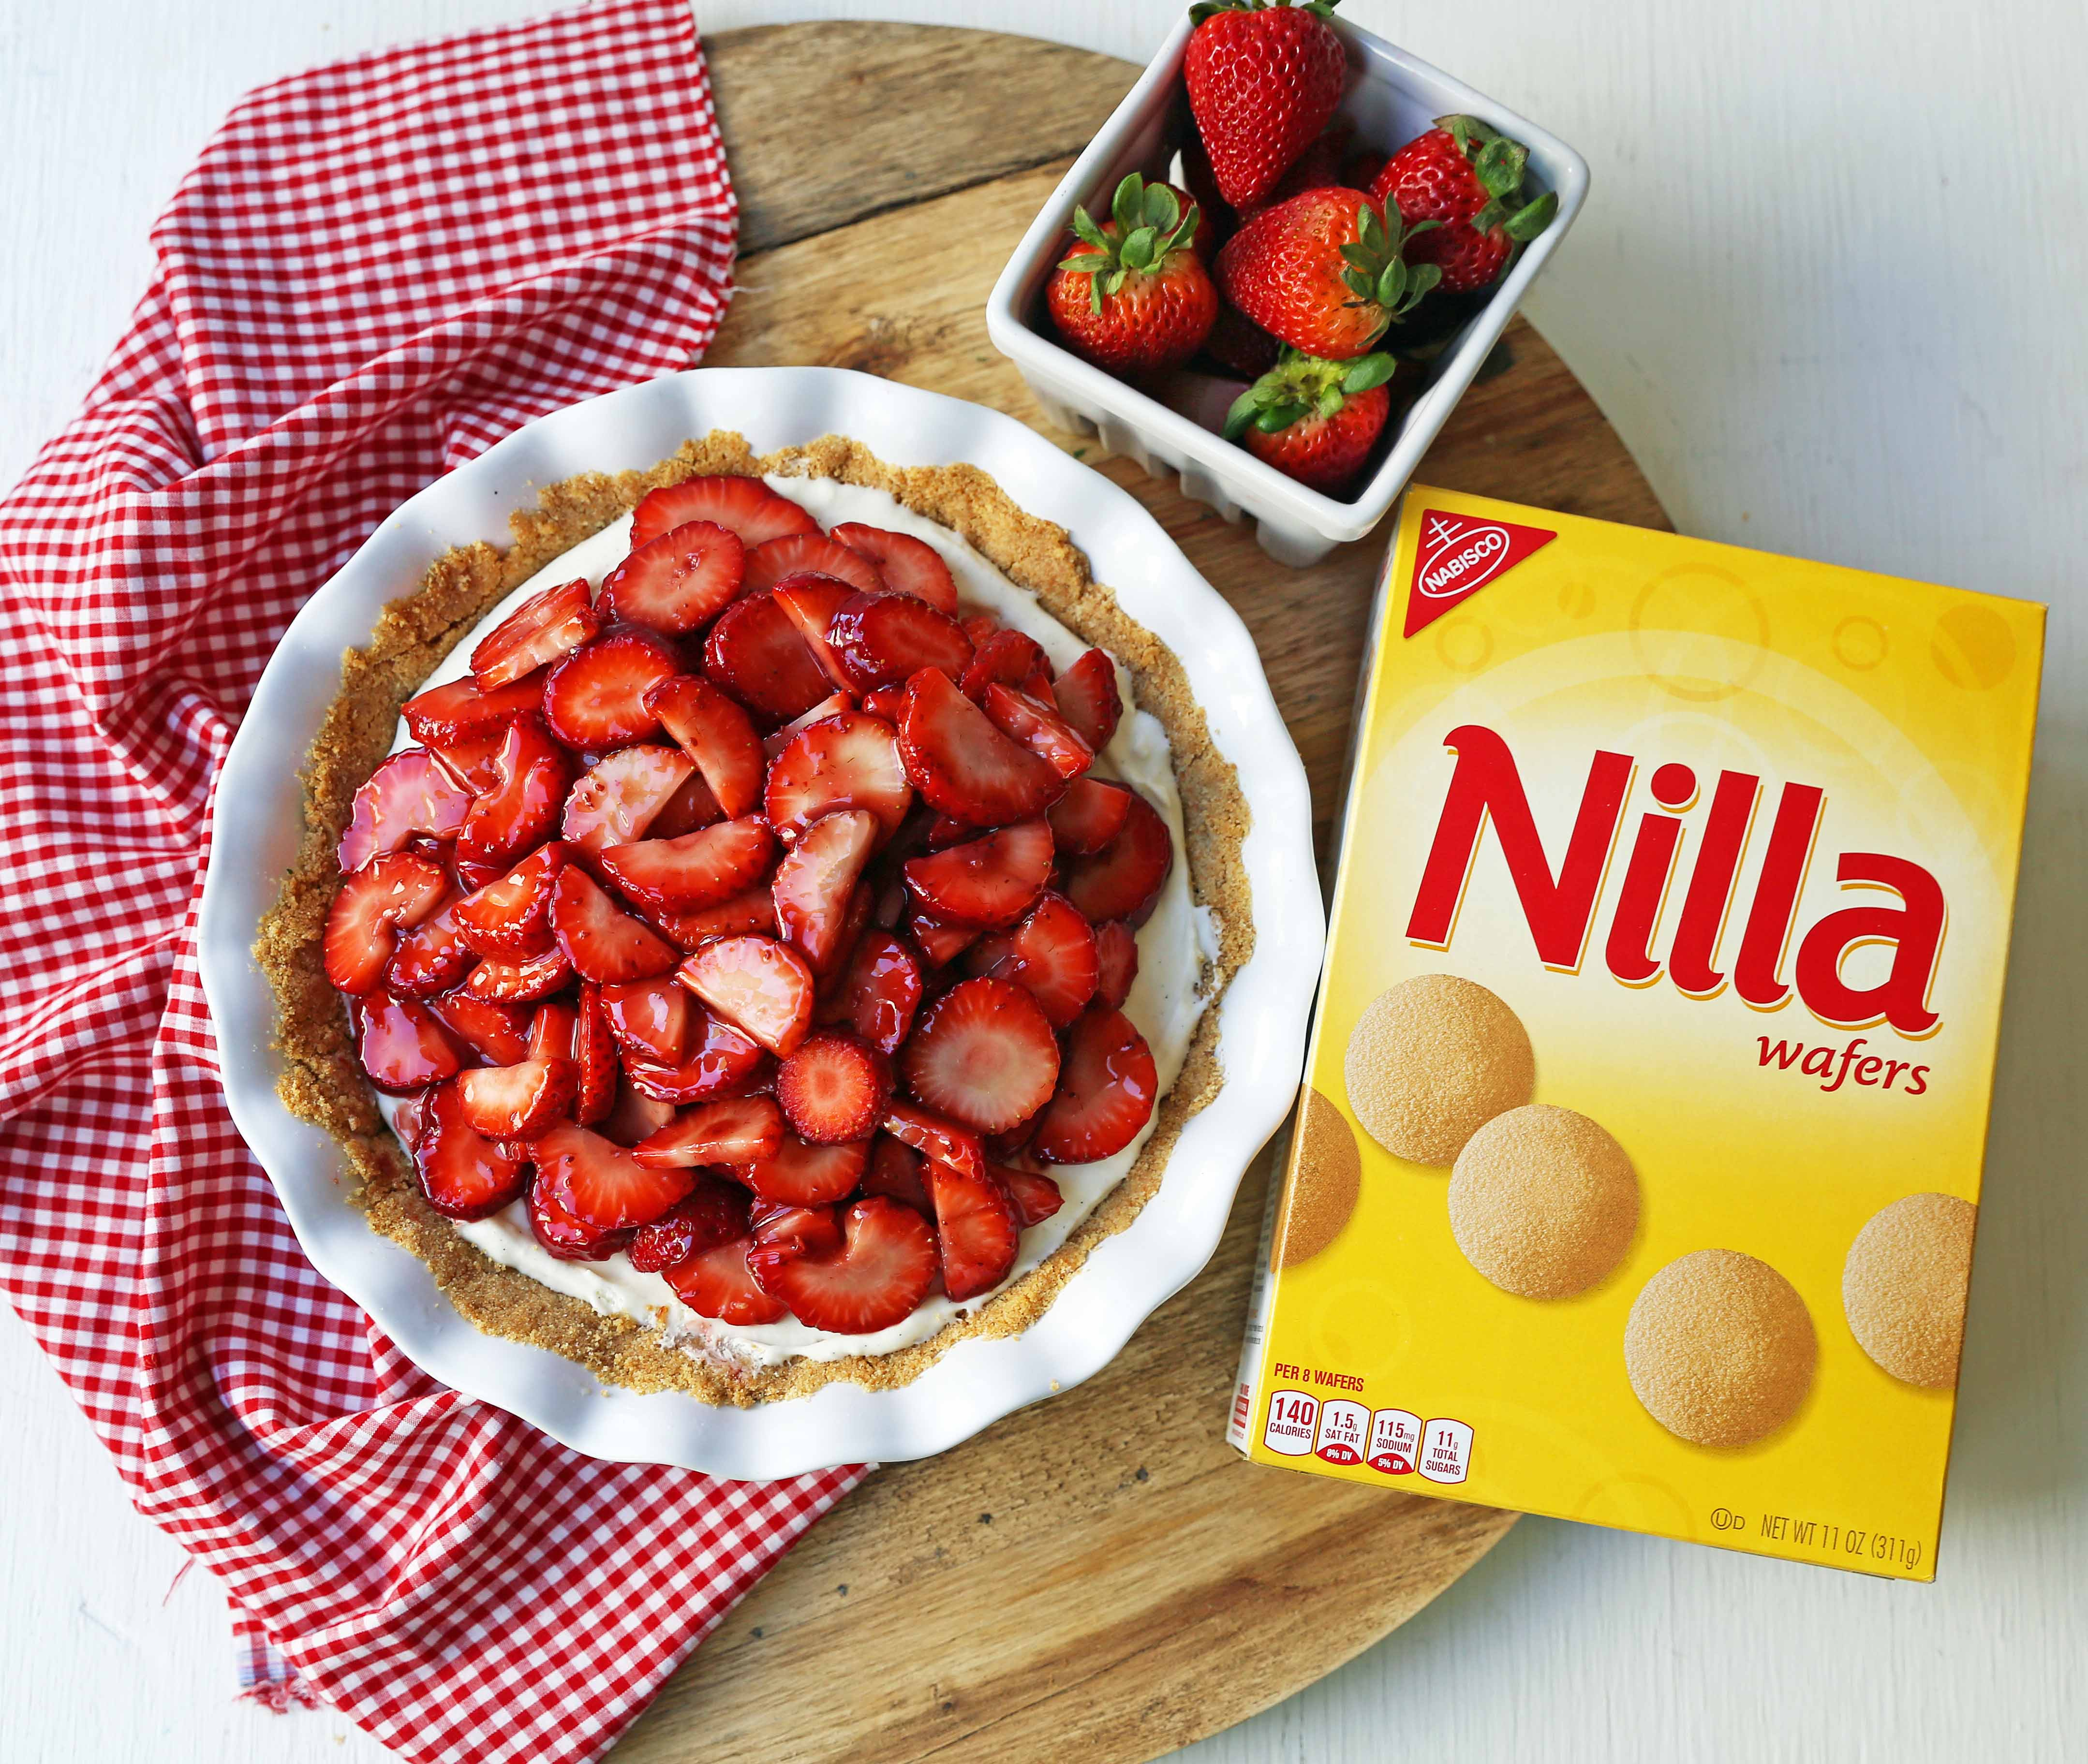 Strawberry Cream Cheese Pie. An easy sweet cream cheese pie with a buttery NILLA Wafer cookie crust and topped with glazed strawberries.The best strawberry pie! #strawberrypie #strawberries #pie #easter #easterdessert #creamcheesepie